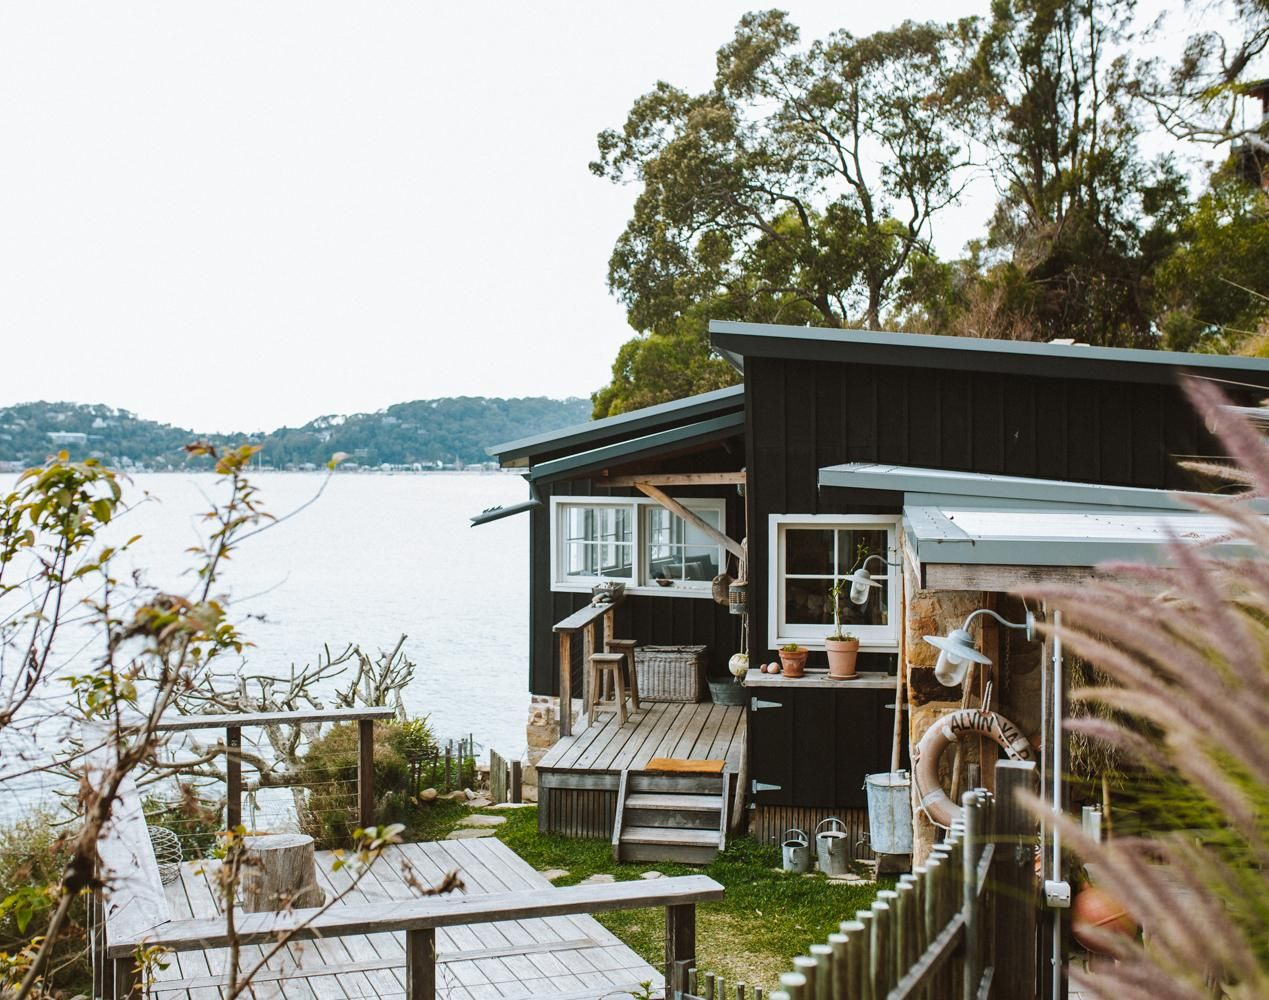 40 Cozy Cabins And Homes That Are The Perfect Escape For Your Next Friendcation Luxury Beach House Beach Cottage Decor Beach Shacks